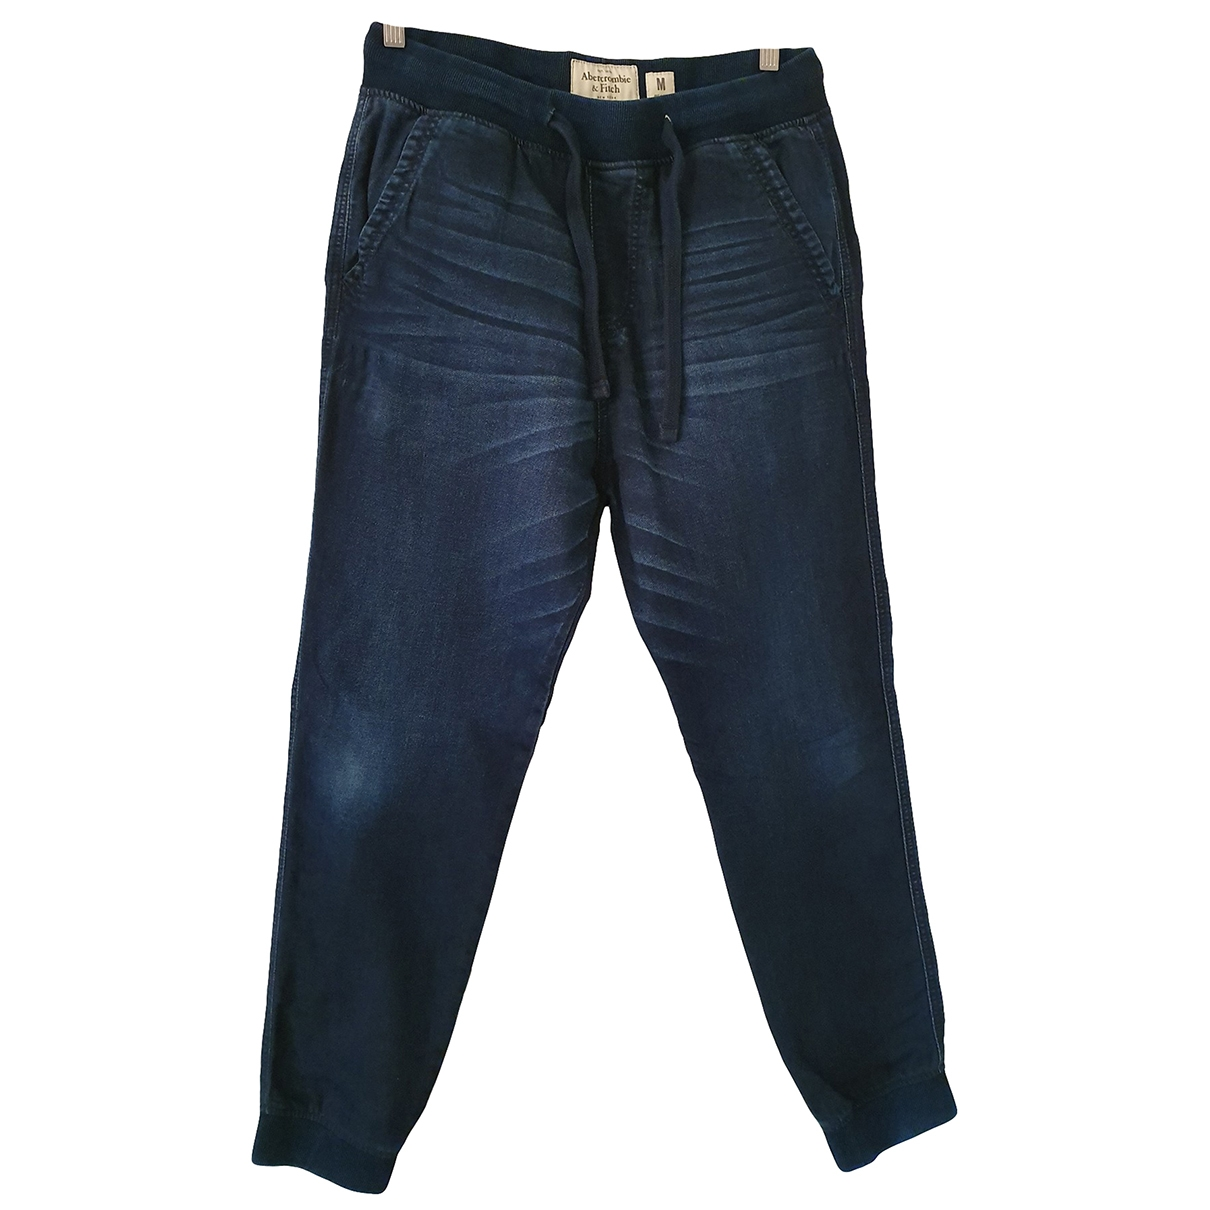 Abercrombie & Fitch \N Blue Cotton Trousers for Men M International